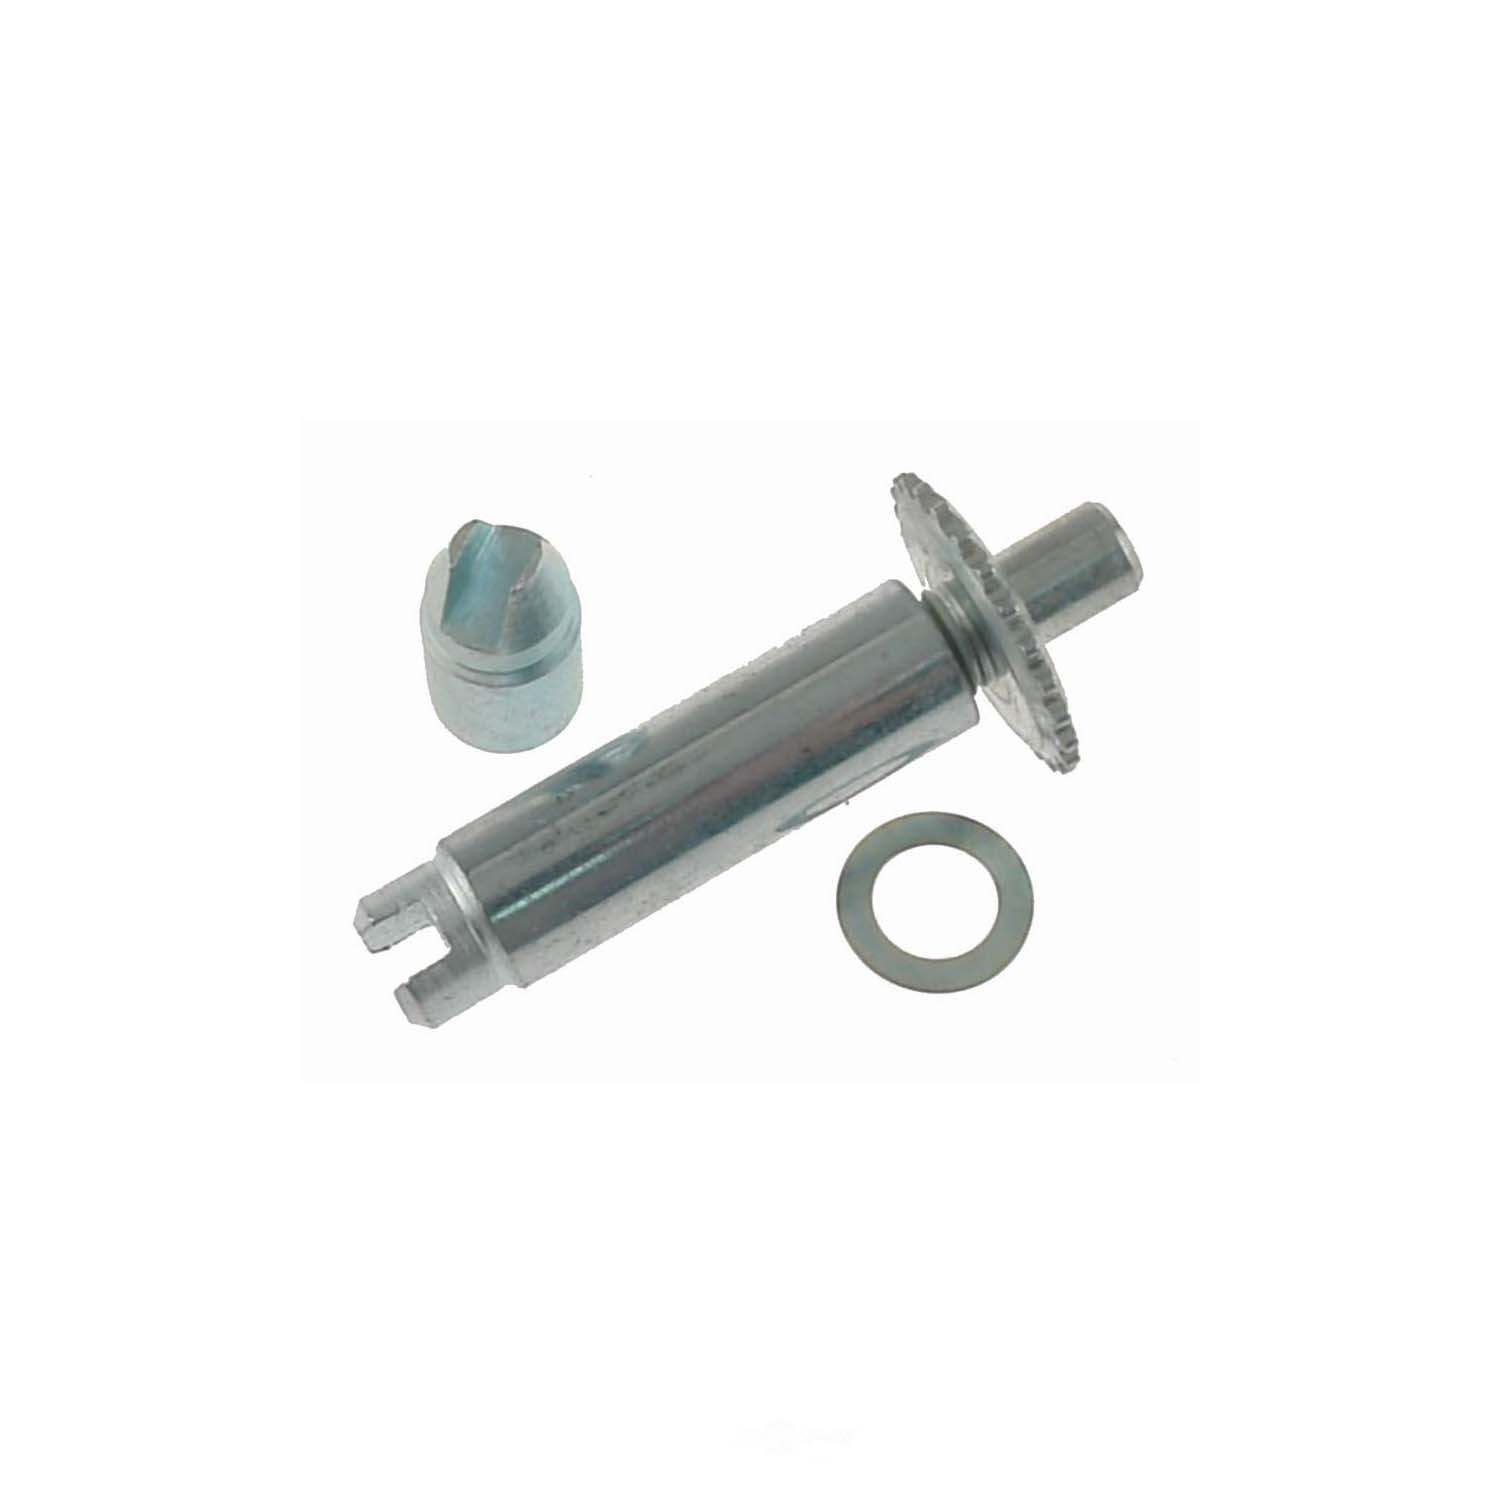 CARLSON QUALITY BRAKE PARTS - Drum Brake Adjusting Screw Assembly (Rear Right) - CRL H1523